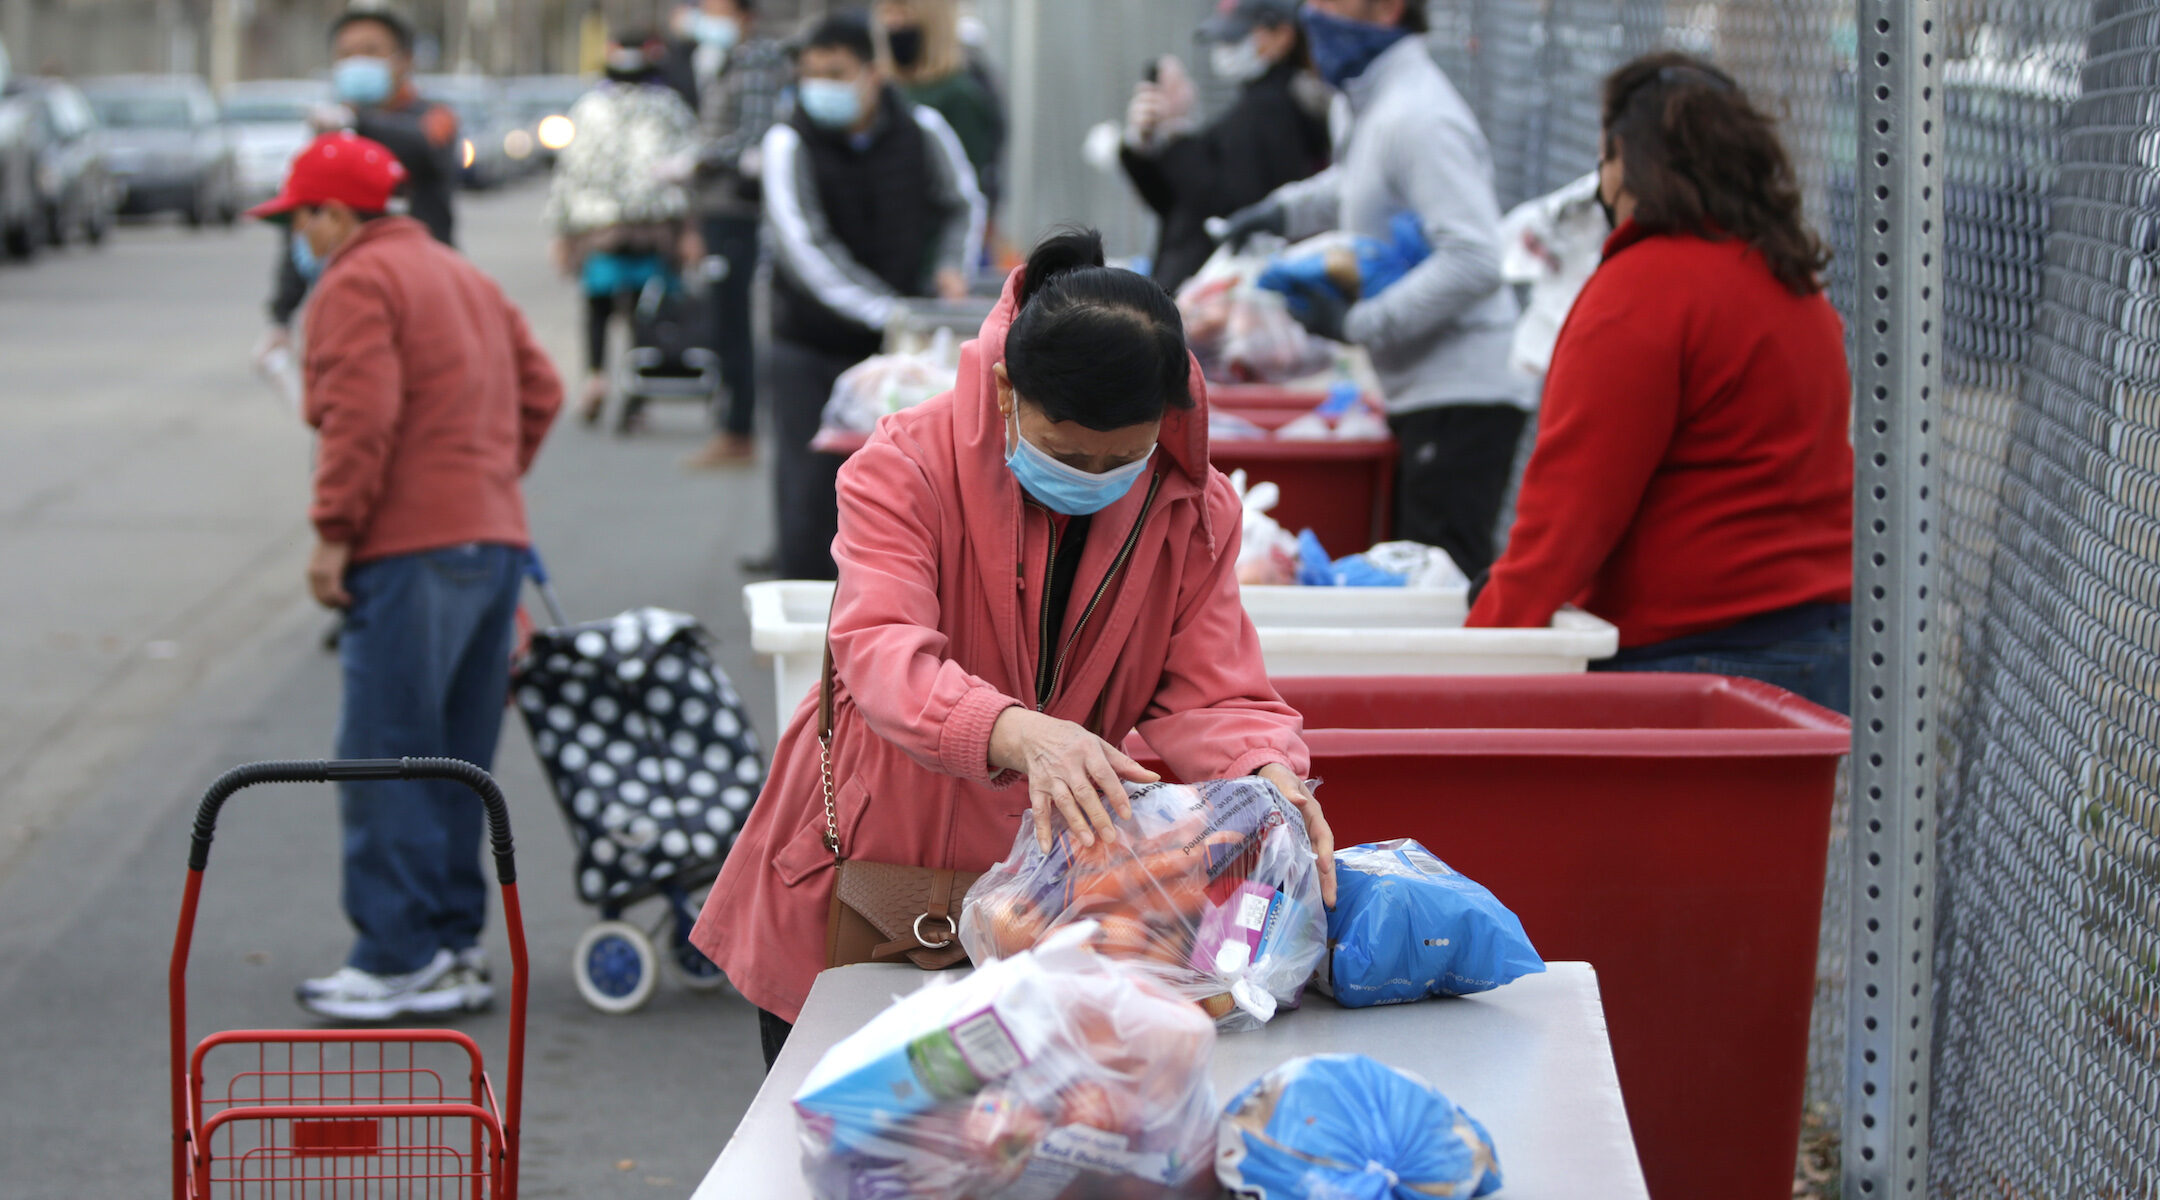 A person picks up donated produce at the American Red Cross food pantry in Boston during Thanksgiving meal distribution, Nov. 21, 2020. (Photo/JTA-Jonathan Wiggs-The Boston Globe via Getty Images)